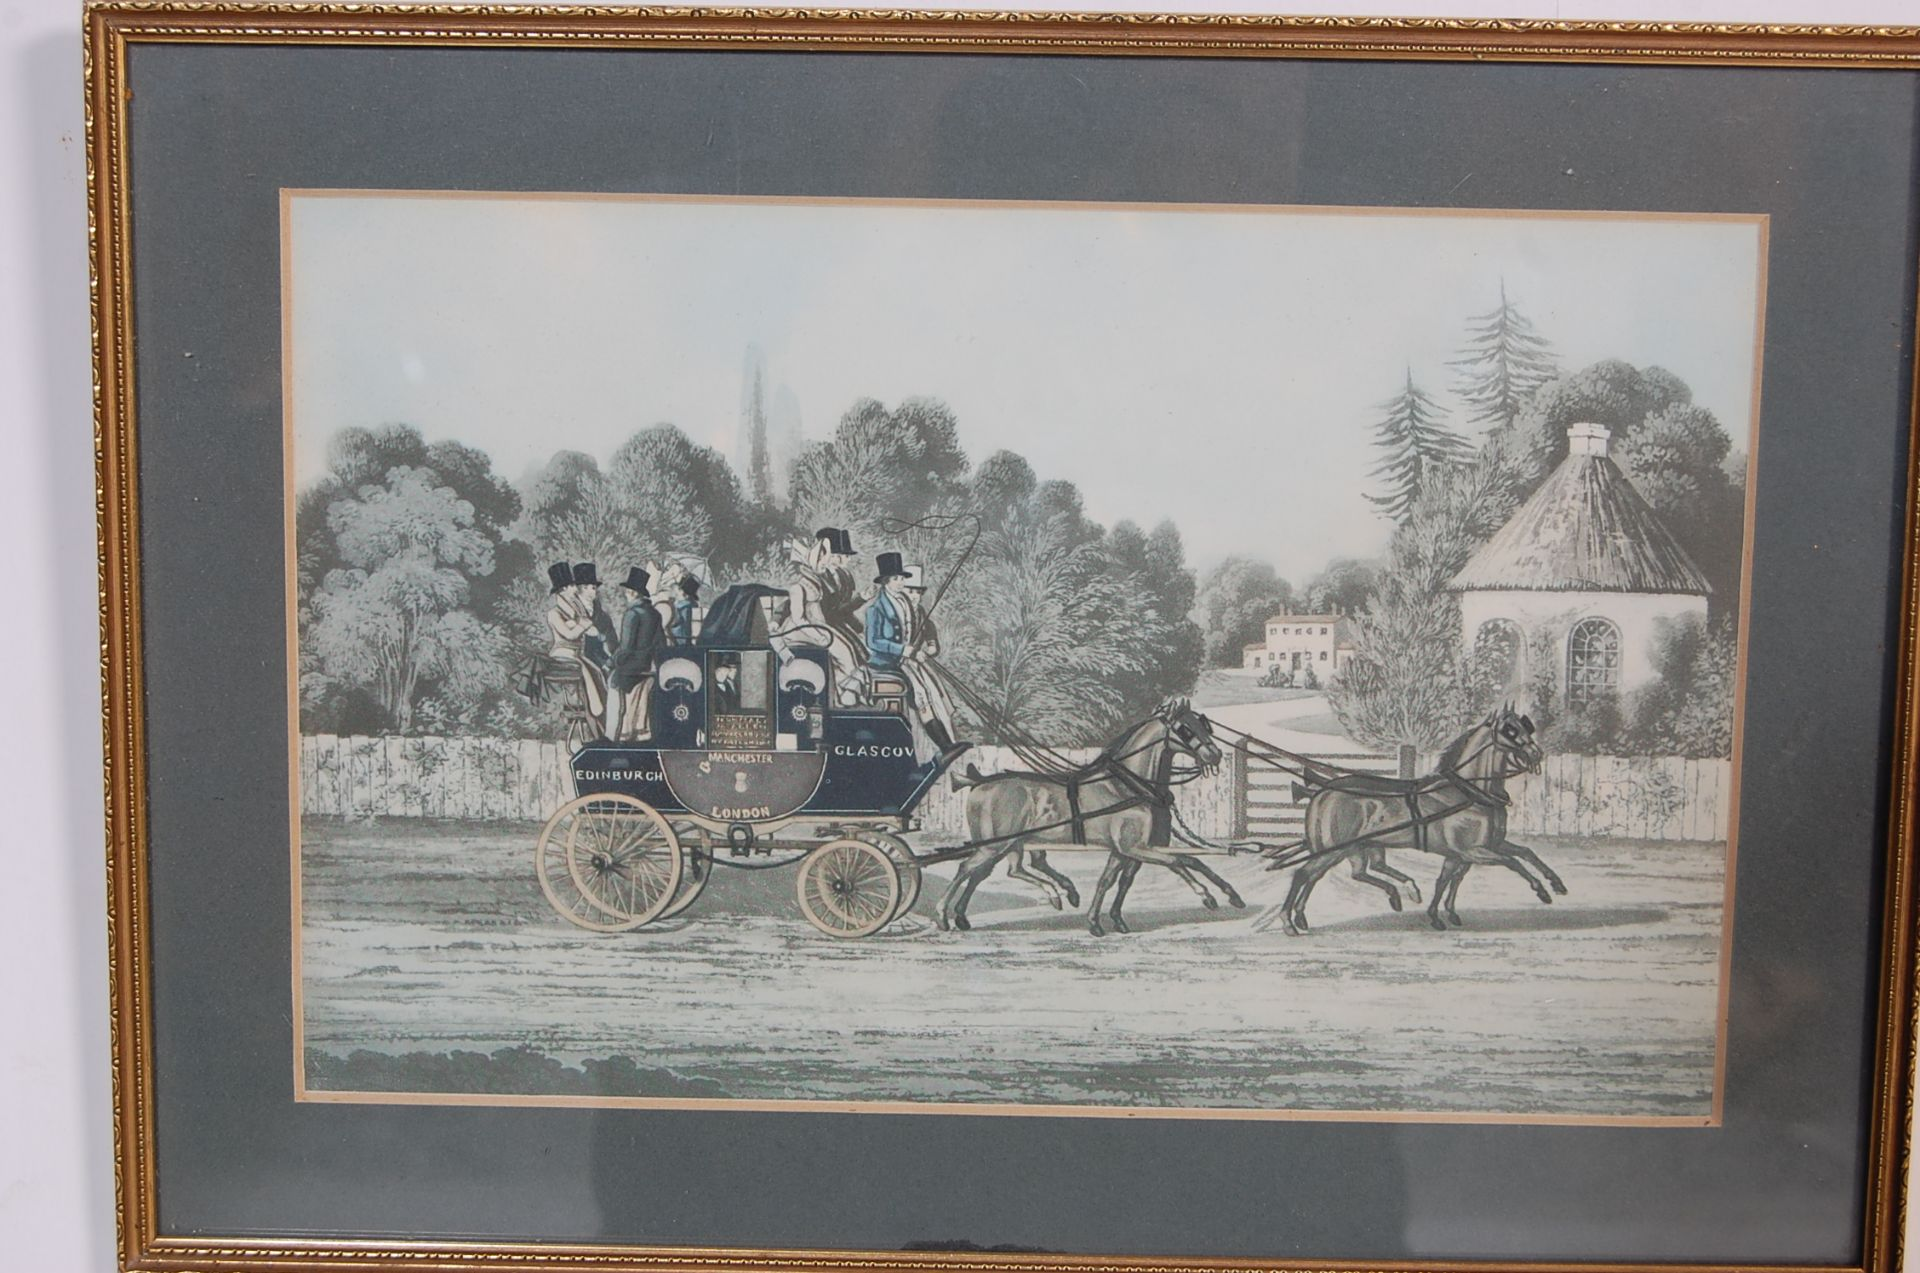 A GROUP OF SEVEN ROYAL MAIL LITHOGRAPH PRINTS DEPICTING 19TH CENTURY ROAYL MAIL COACHES - Image 3 of 13